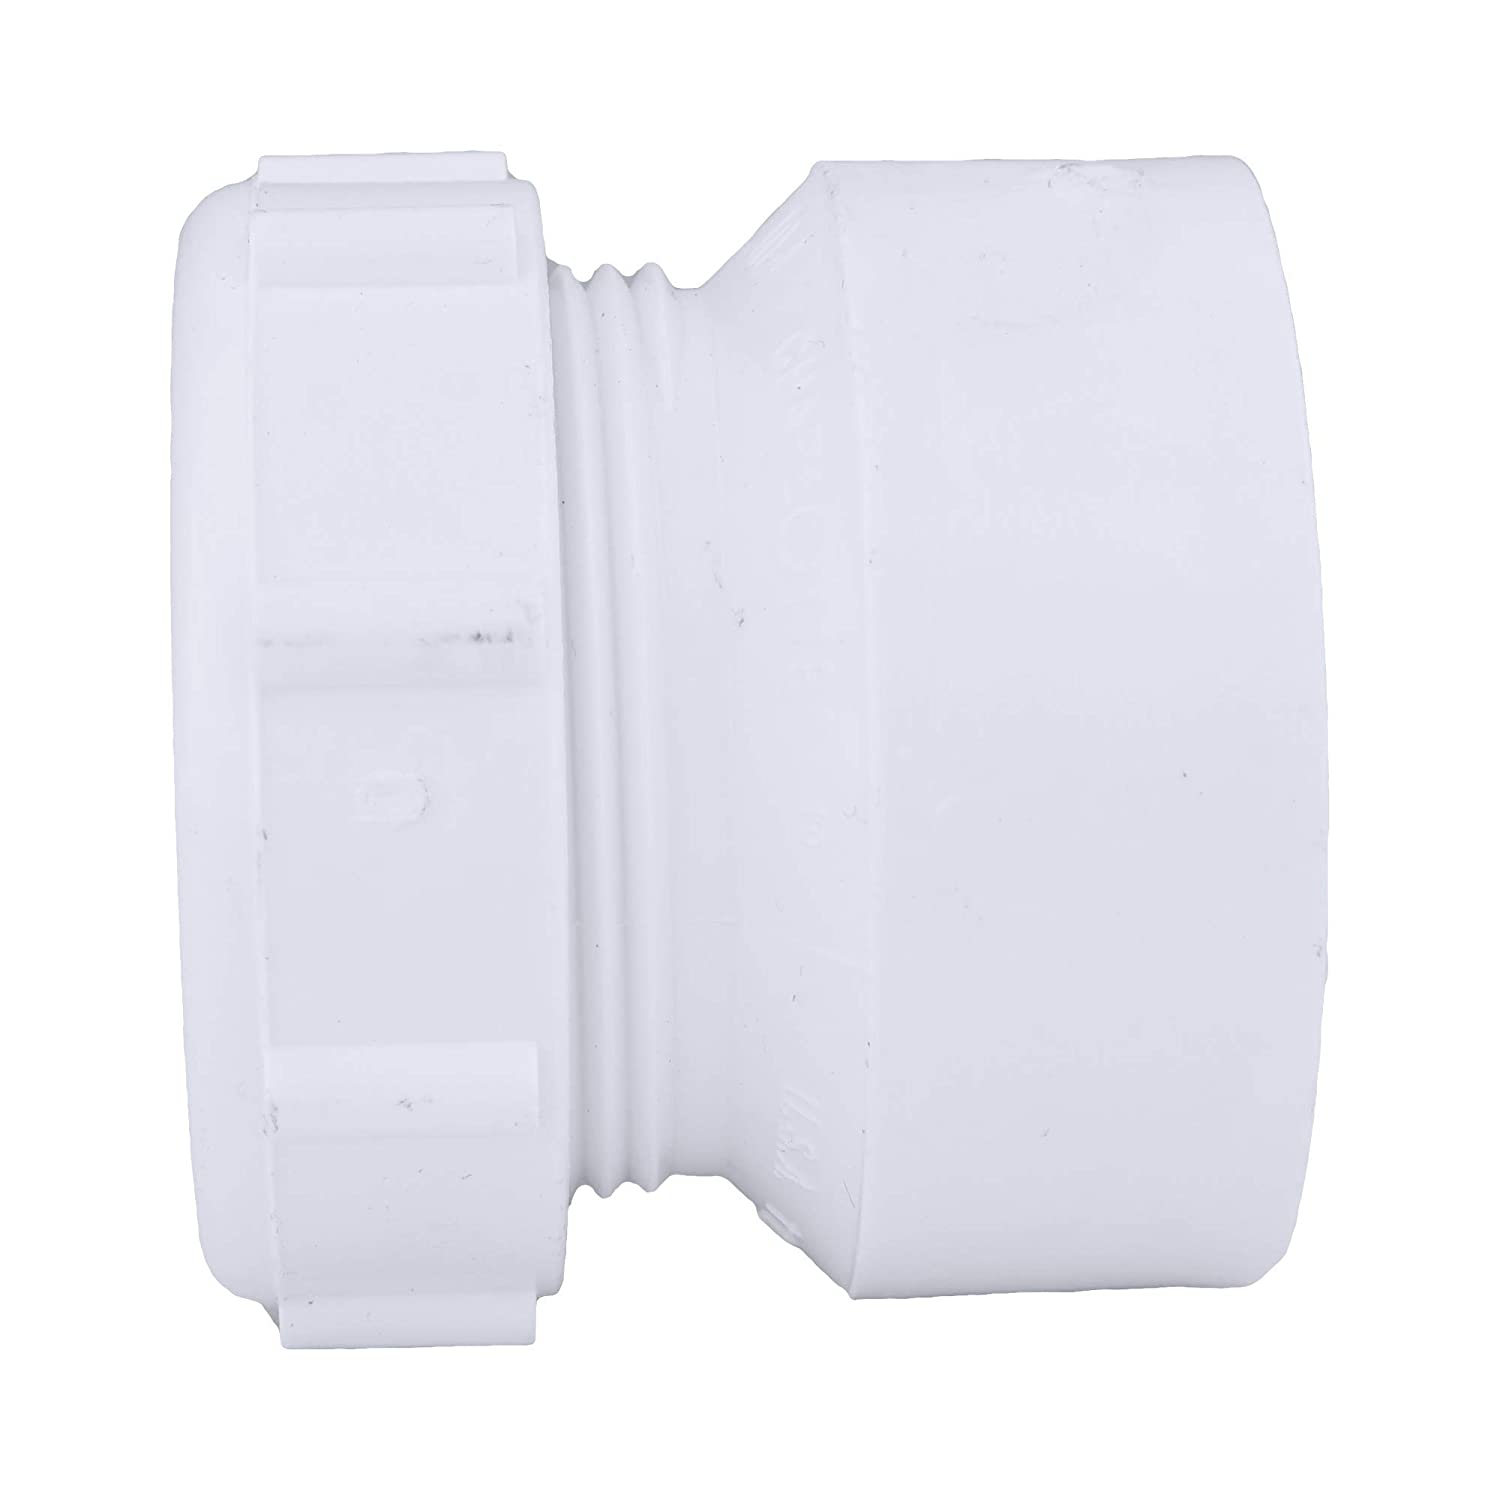 Charlotte Pipe 1-1//2 Hub x Tubular Slip Pipe Fitting 50 Unit Box Durable and Easy to Install for Home or Industrial Use Drain, Waste and Vent with Wash and Polynut Schedule 40 PVC DWV